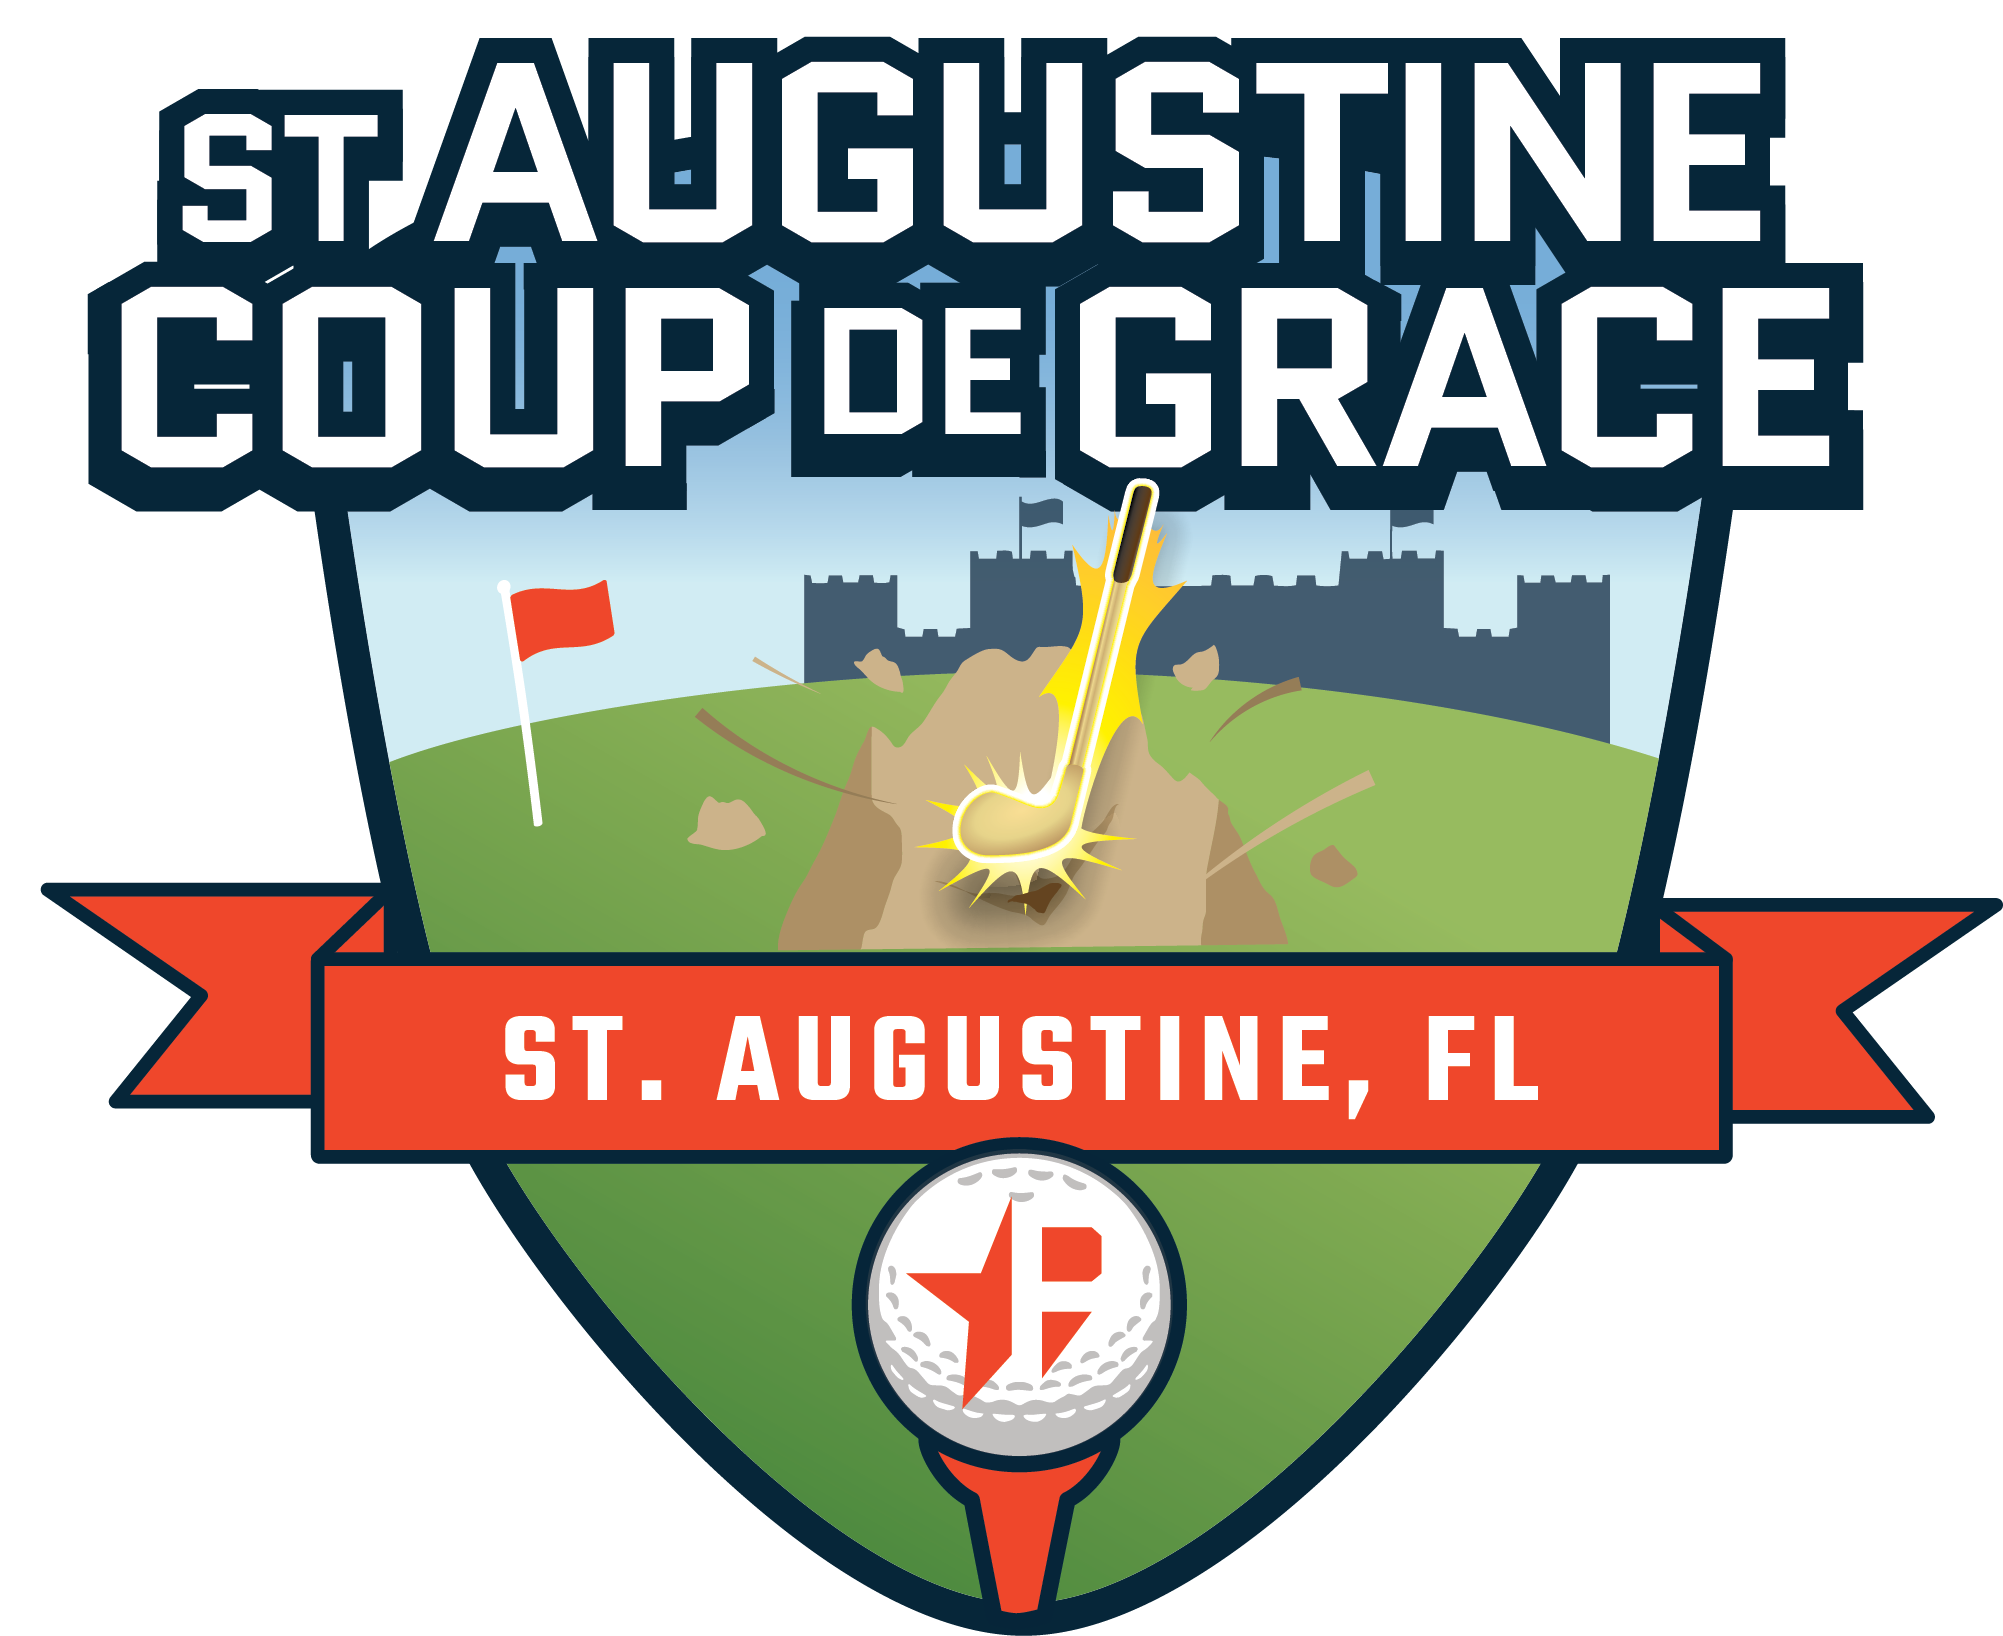 Prospects by Sports Illustrated St. Augustine Coup De Grace logo